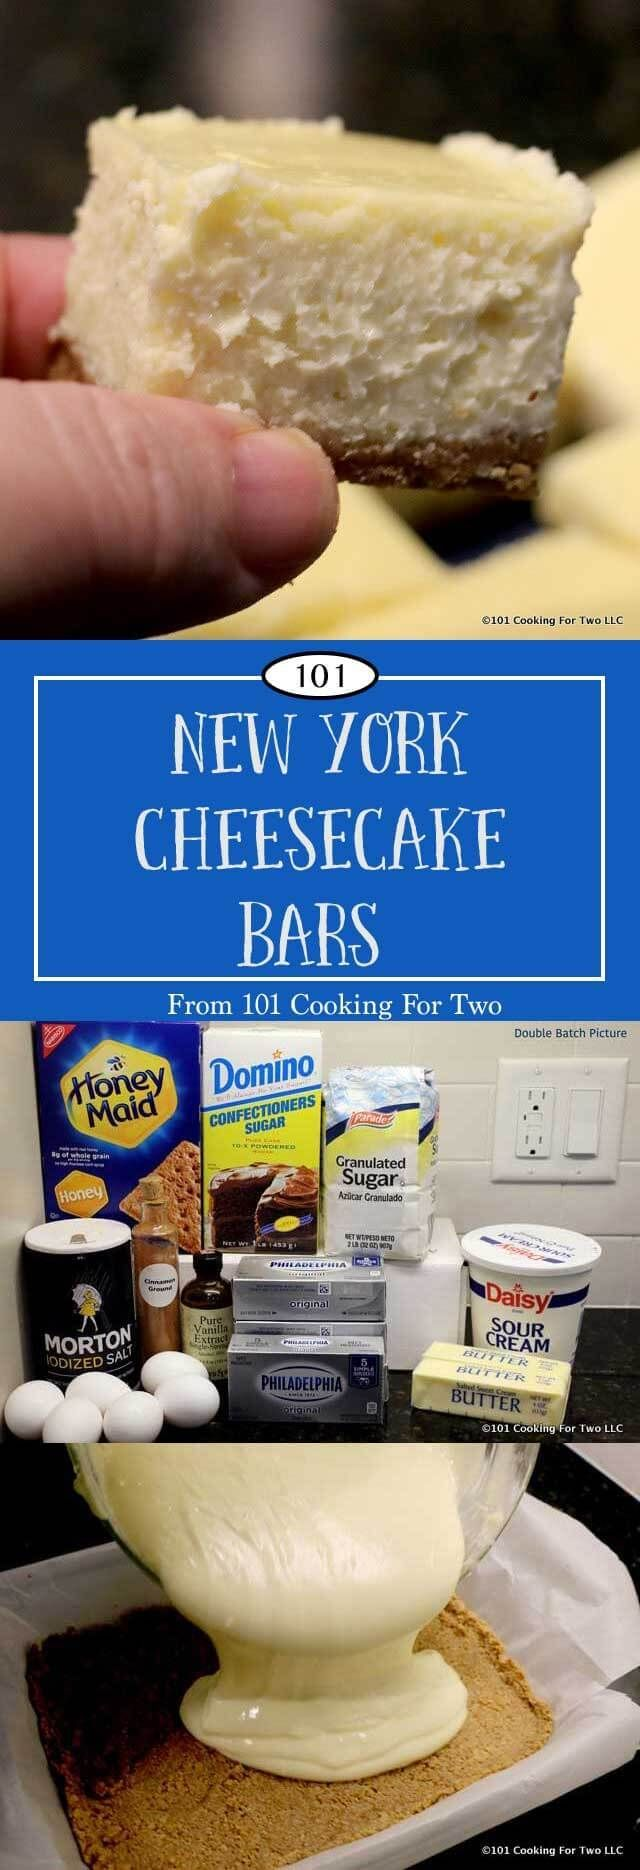 New York cheesecake bars will impress your friends and family. Creamy delectable cheesecake, great for that special brunch with friends or family gatherings. via @drdan101cft